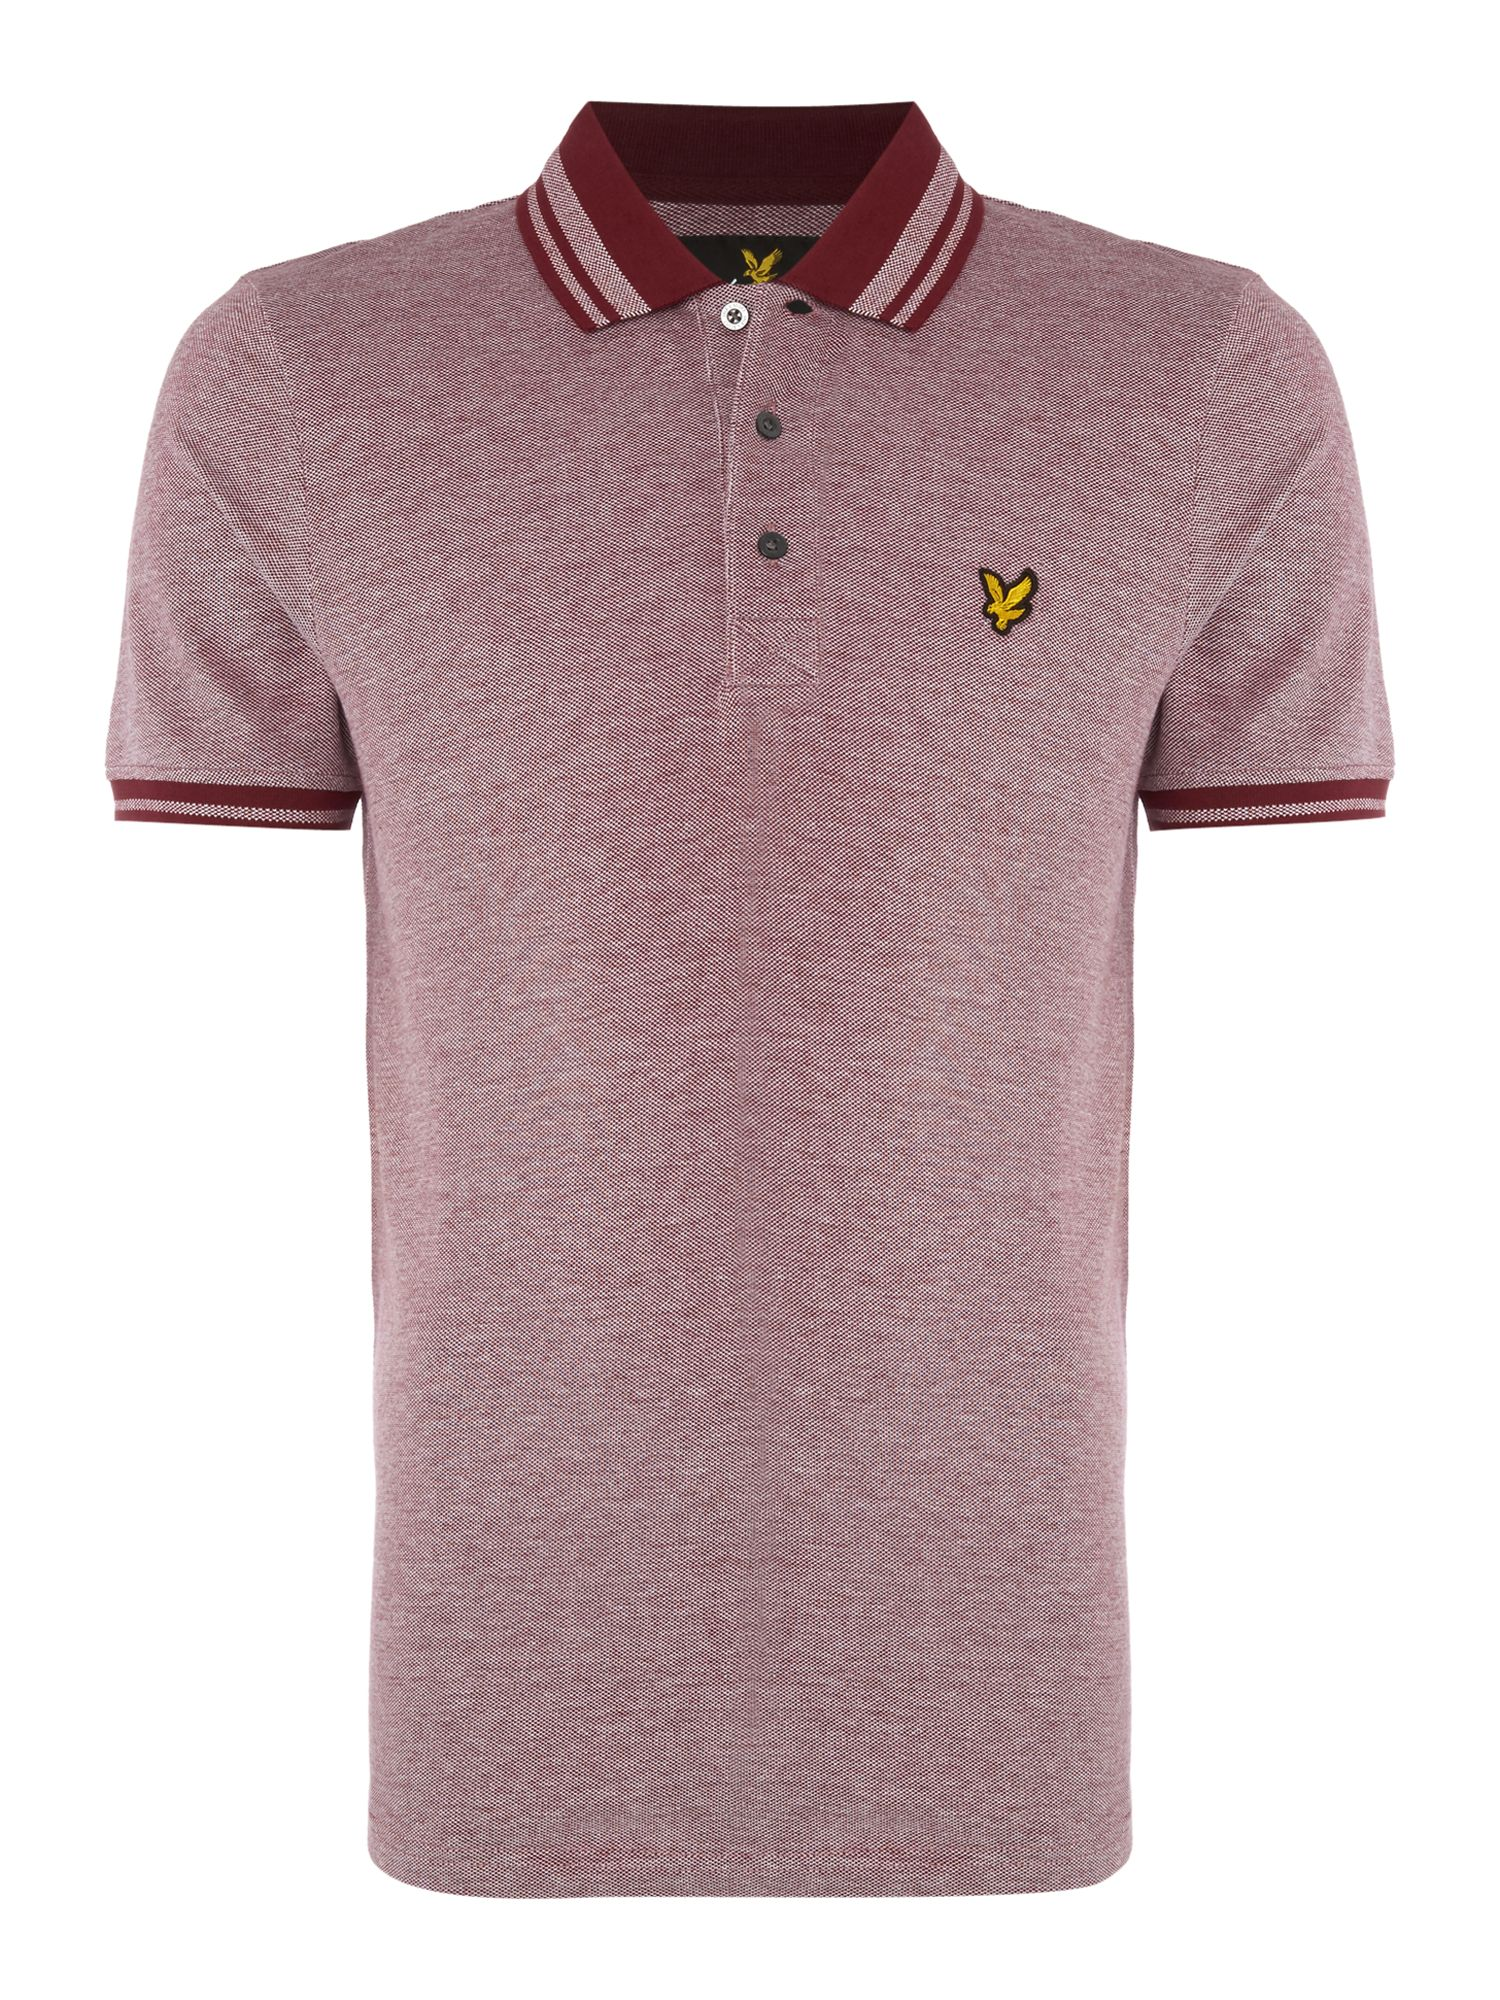 Men's Lyle and Scott Short Sleeve Oxford Tipped Collar Polo Shirt, Claret